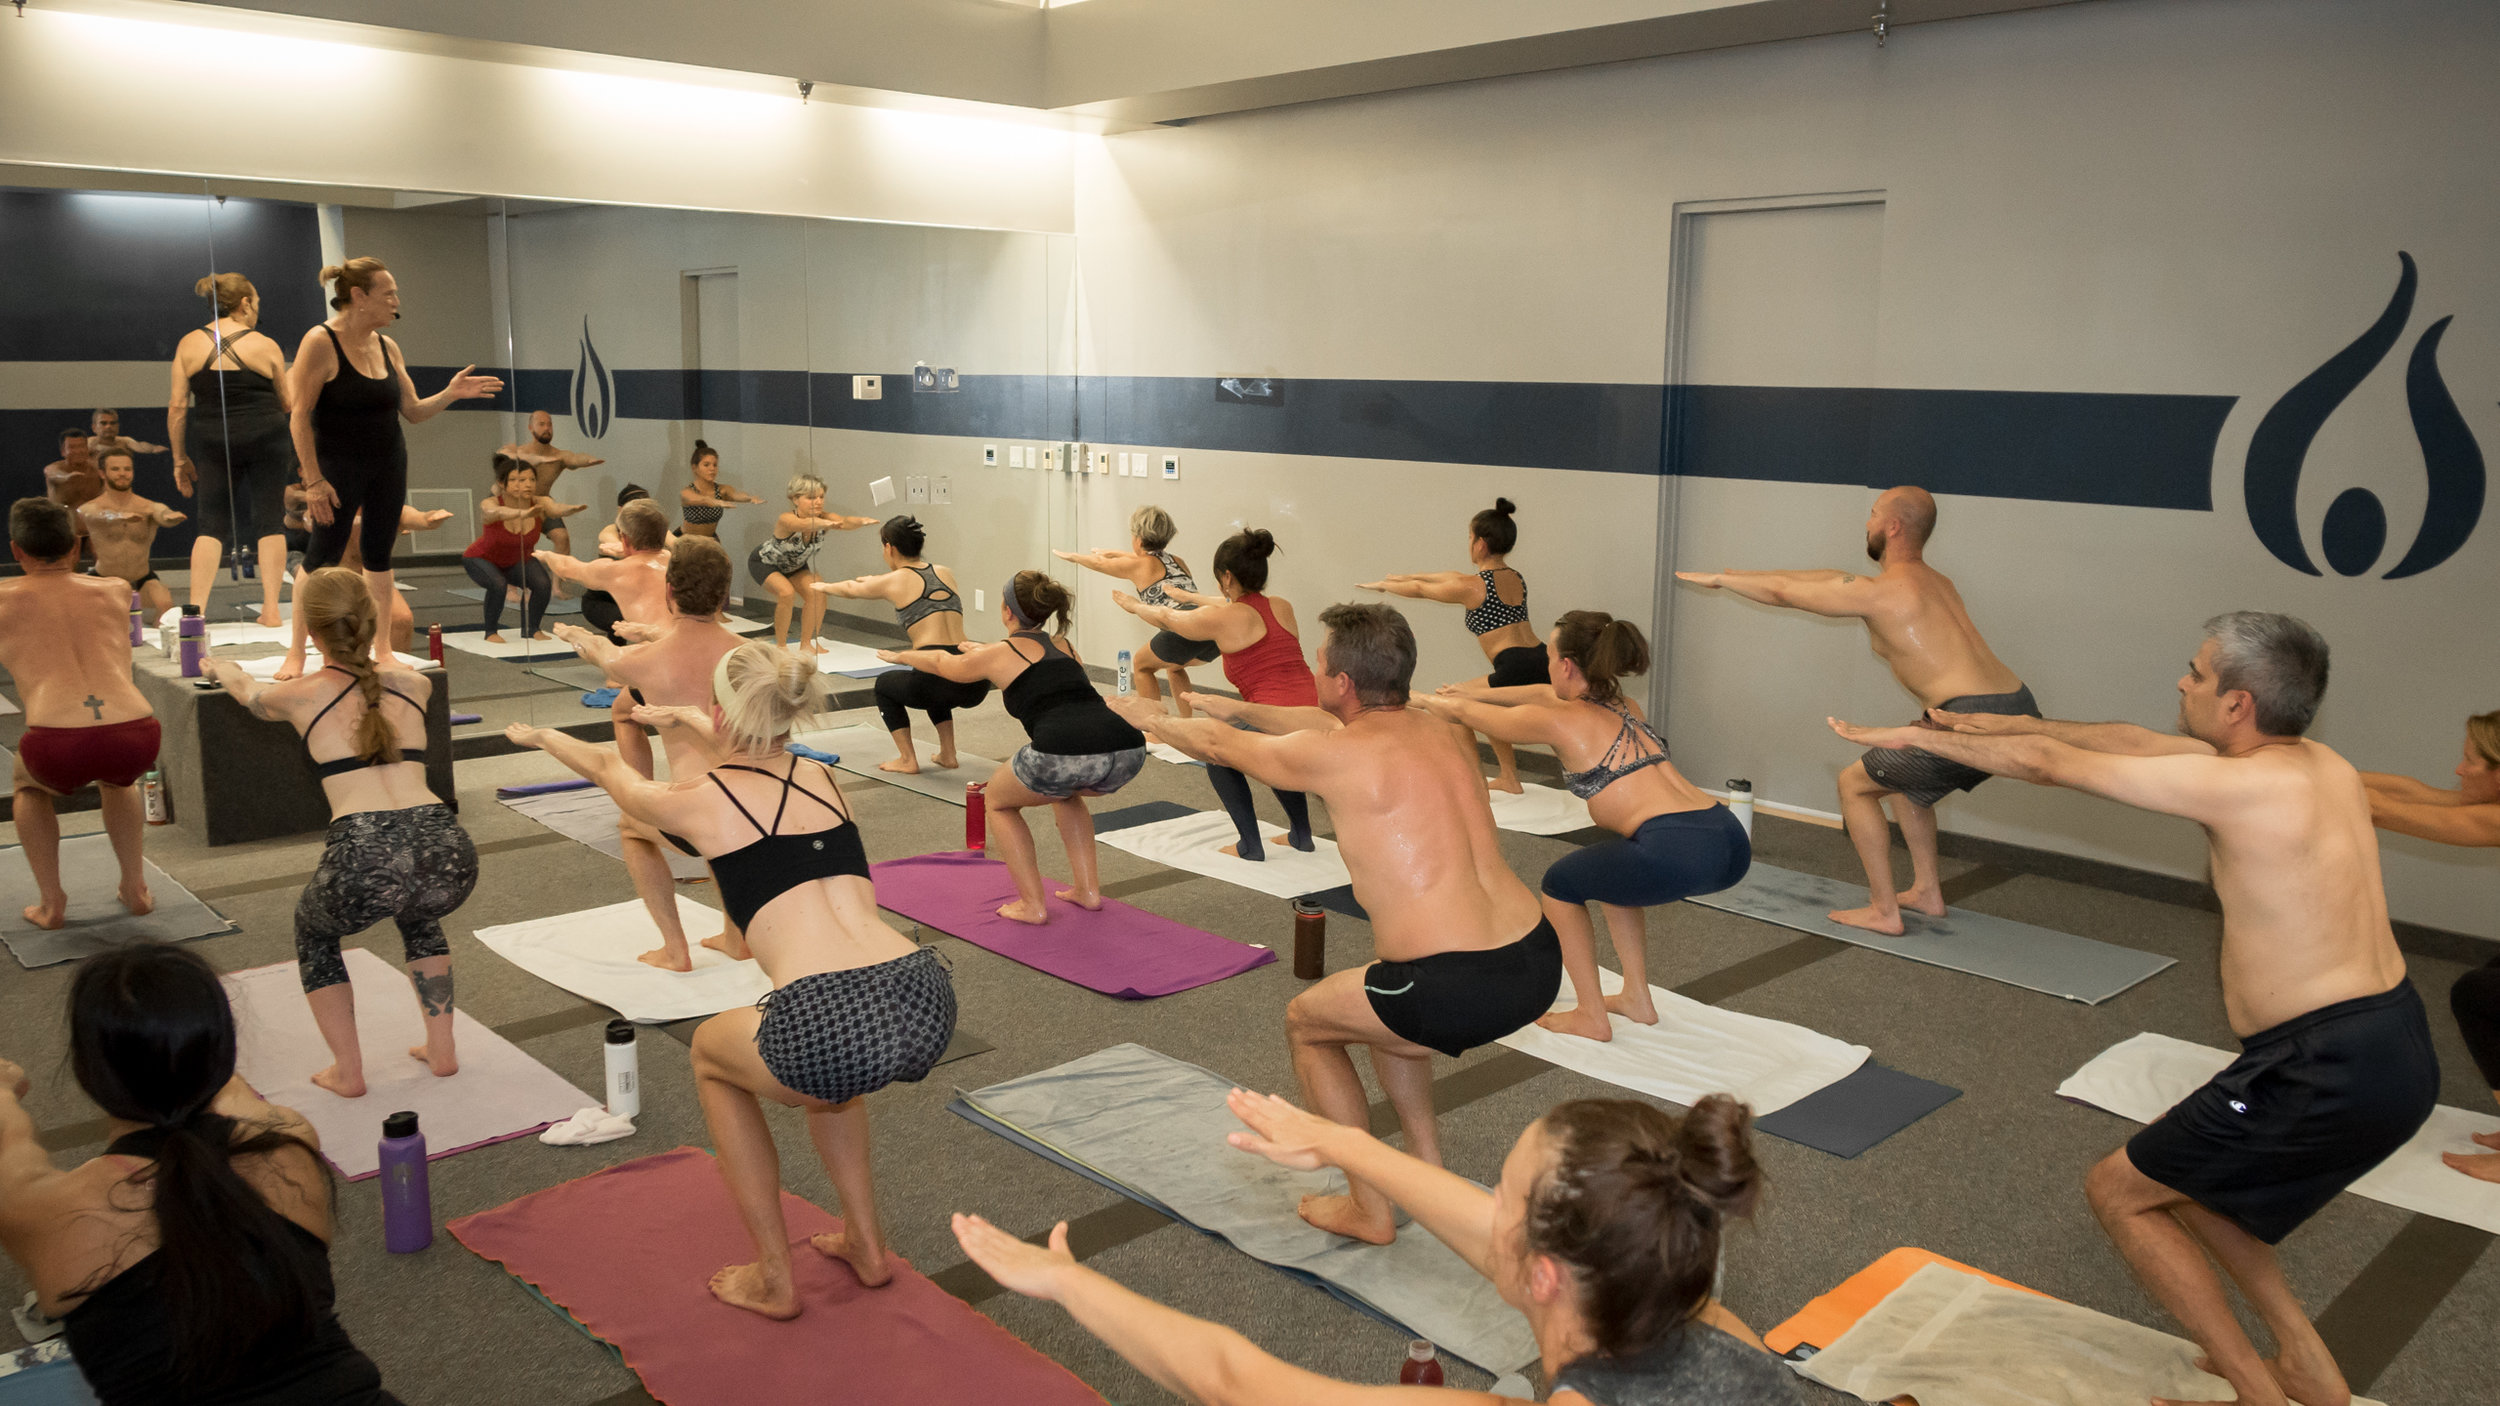 Copy of bikram-yoga-31.jpg